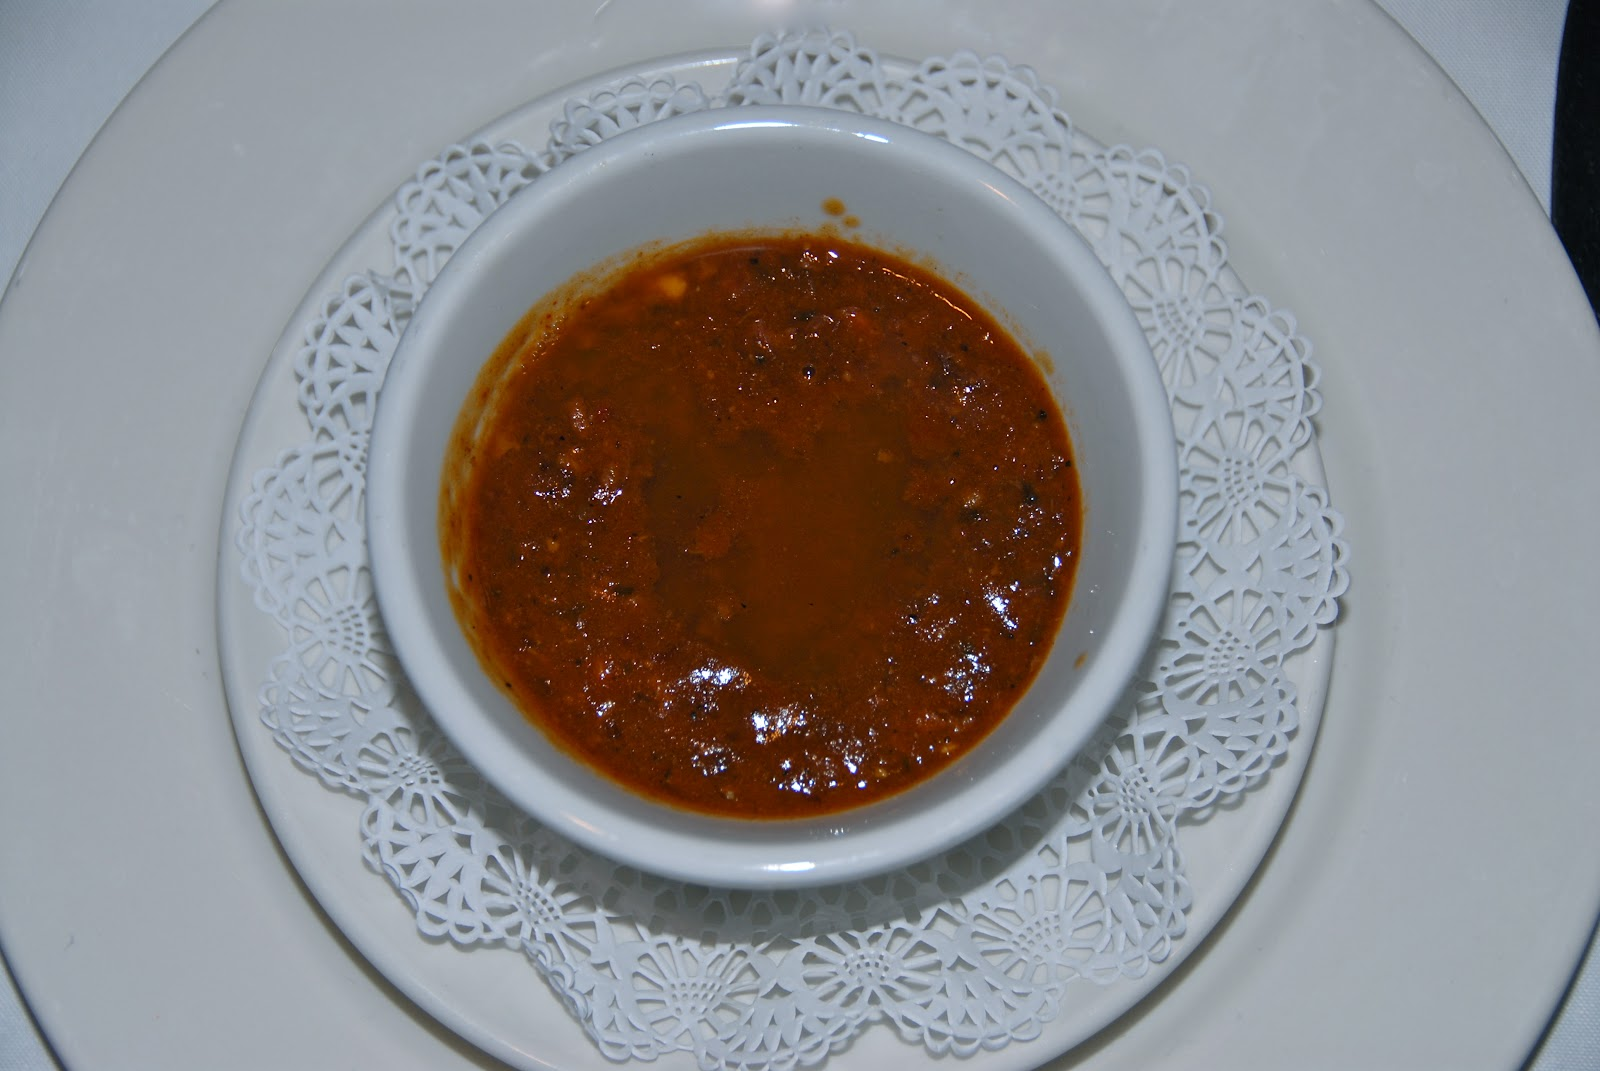 New Orleans classic: turtle soup. It was rich